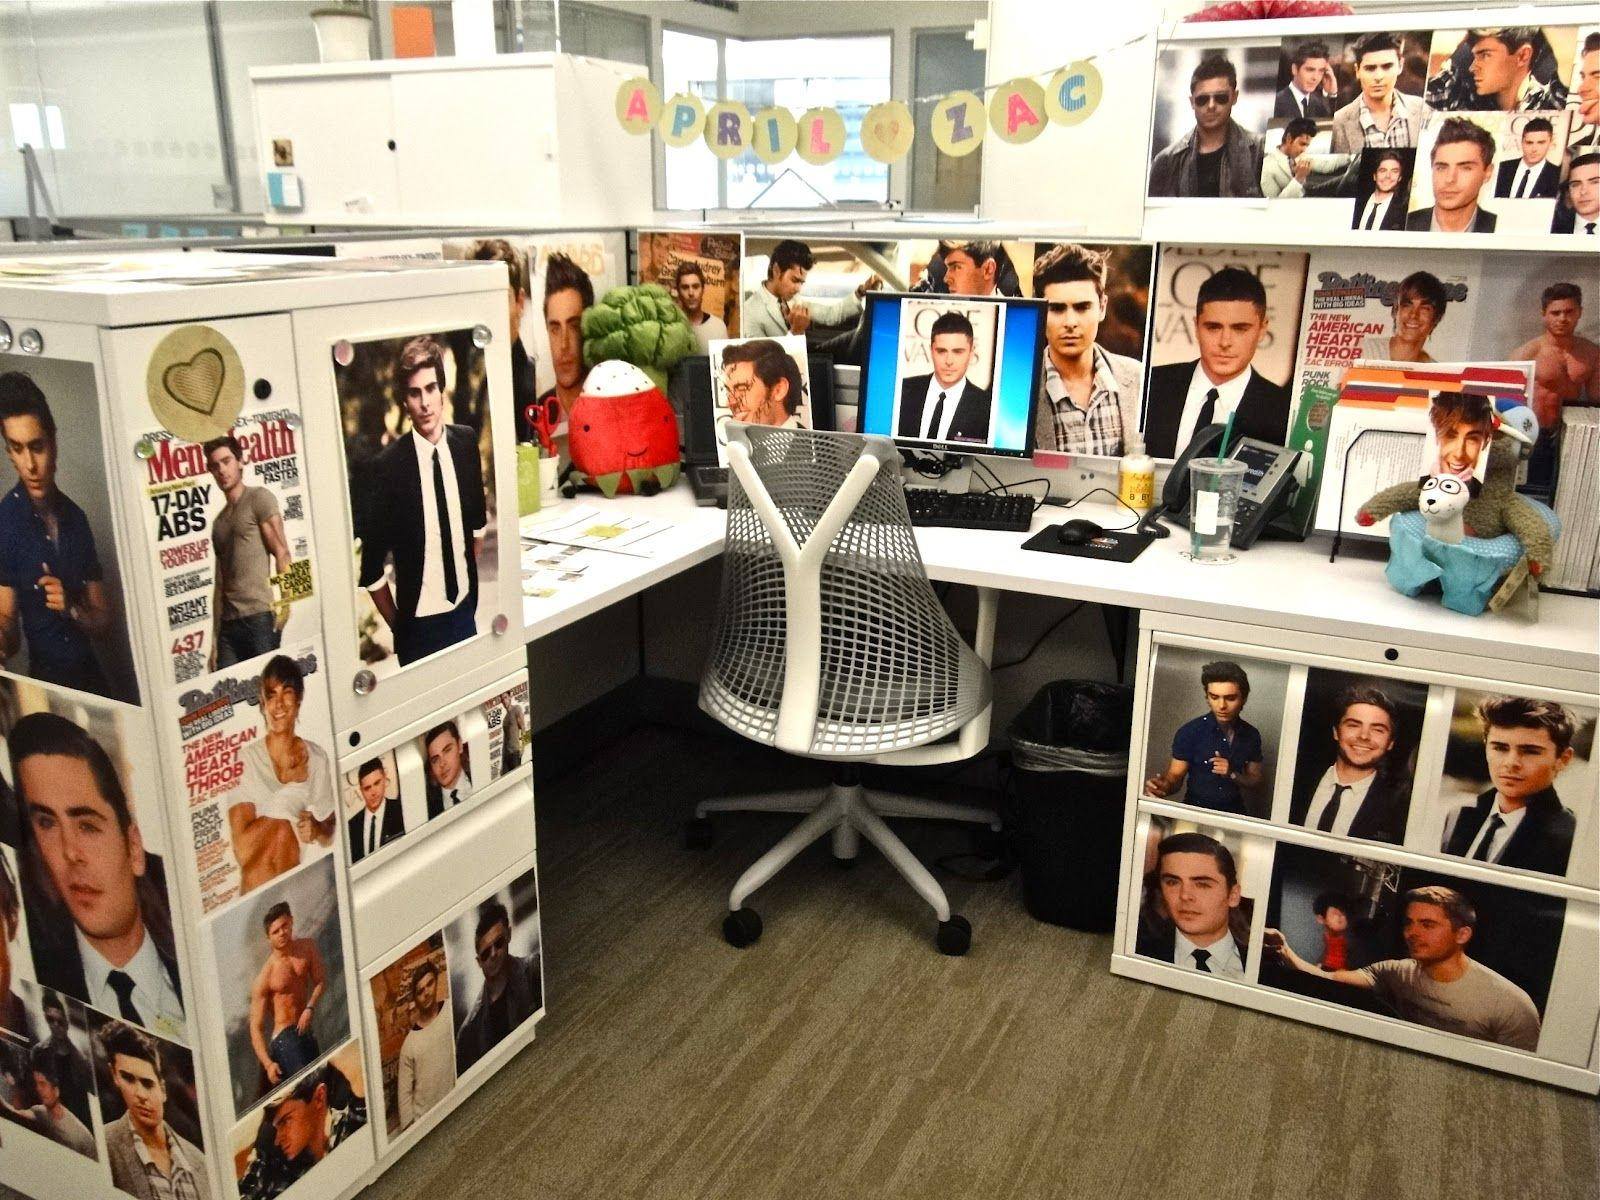 ideas to decorate office cubicle. Decorated Cubicles With Awesome Photos! #decoratedcubicles Ideas To Decorate Office Cubicle S